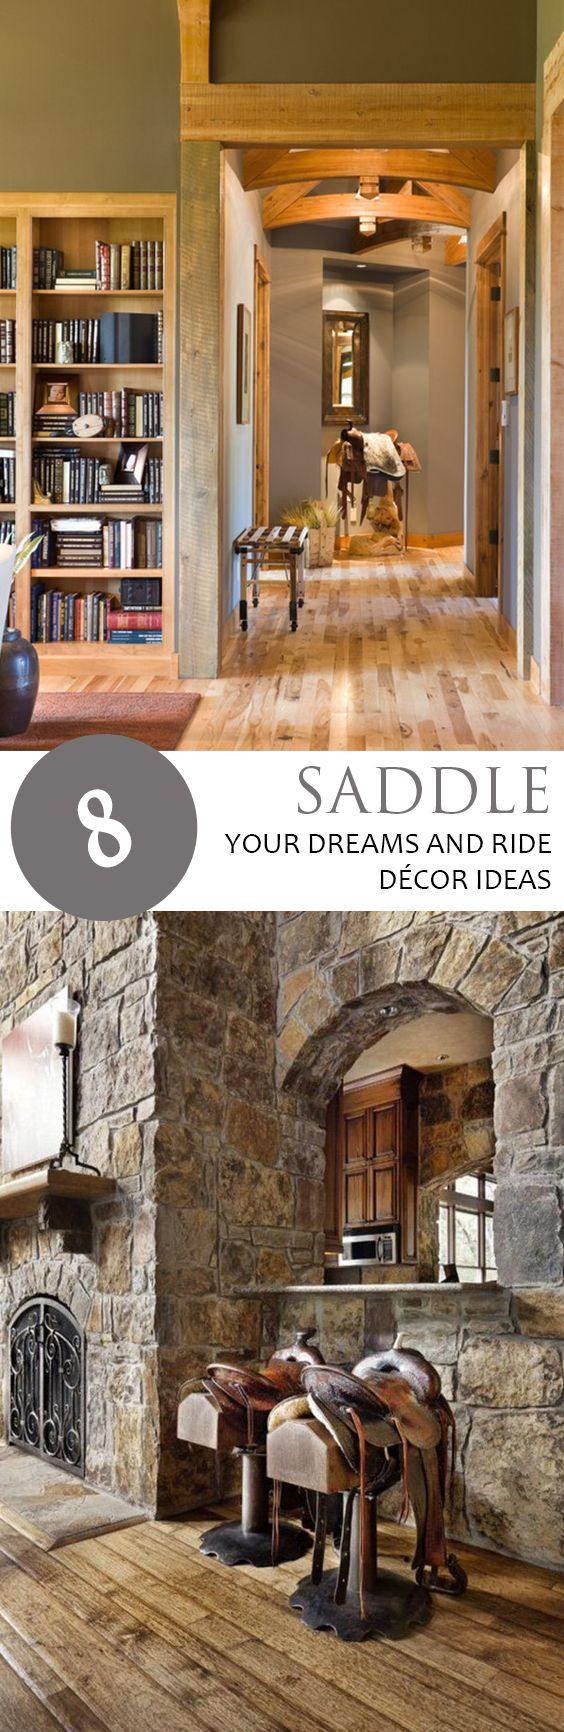 Rustic decor, rustic decor ideas, rustic home decor, DIY rustic decor, popular pins, DIY home, Decorating With Saddles, How to Decorate with Saddles, Home Decorating Ideas, Easy Ideas for Home Decor